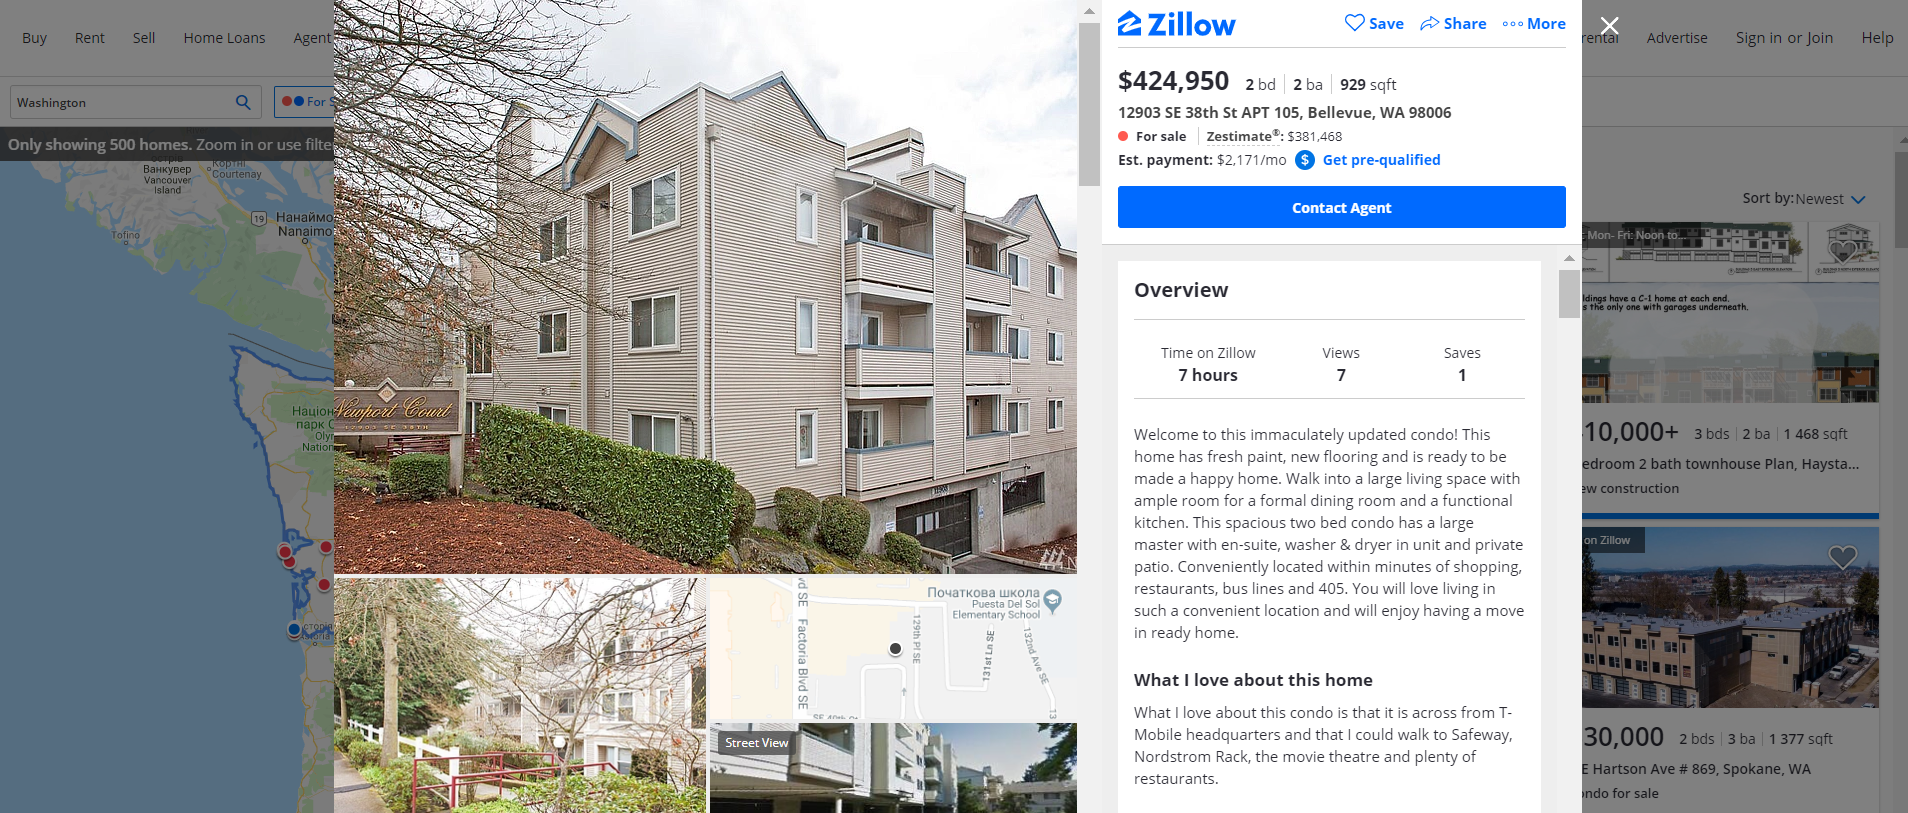 How to Build a Website Like Zillow Property